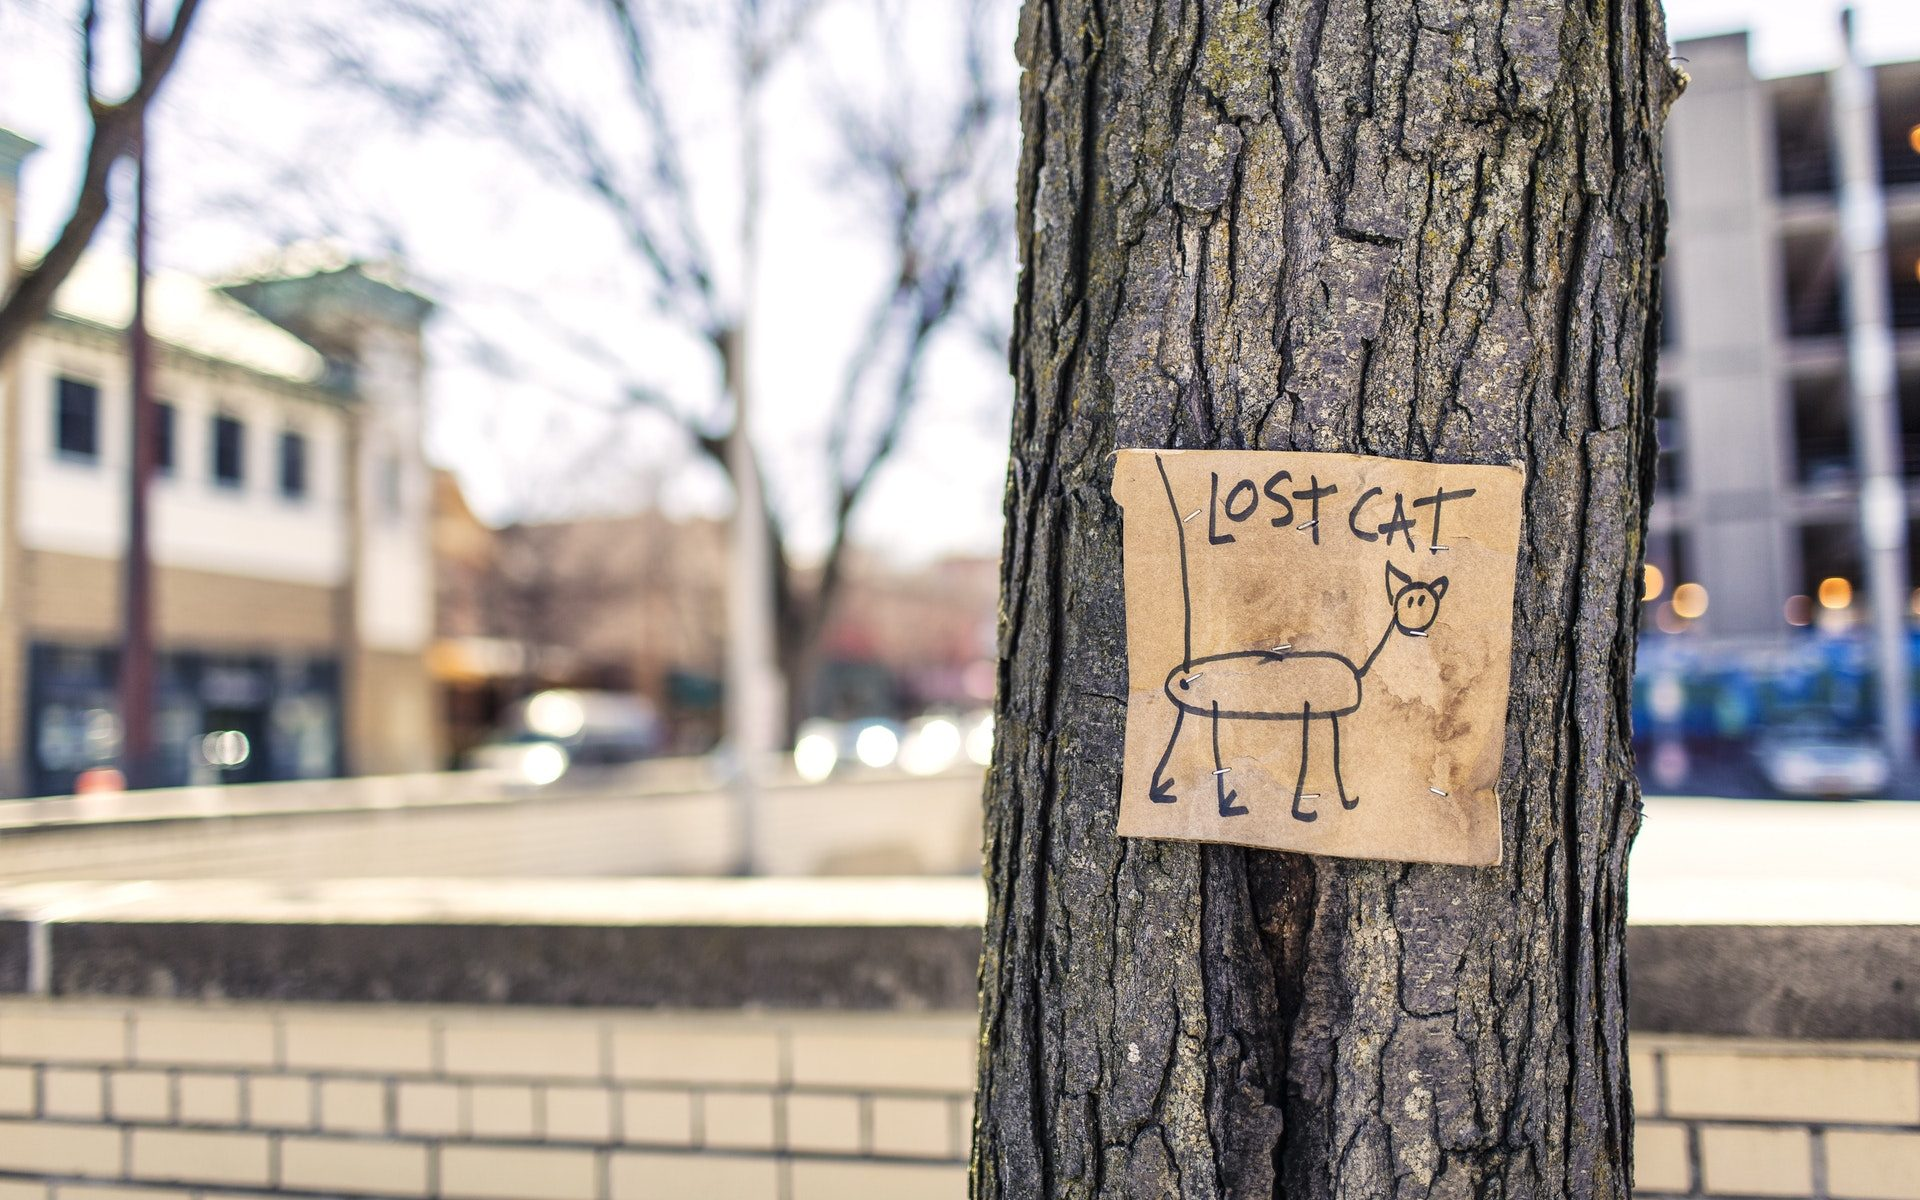 pet-trackaer-gps-device-for-lost-cat-tree-sign-fun